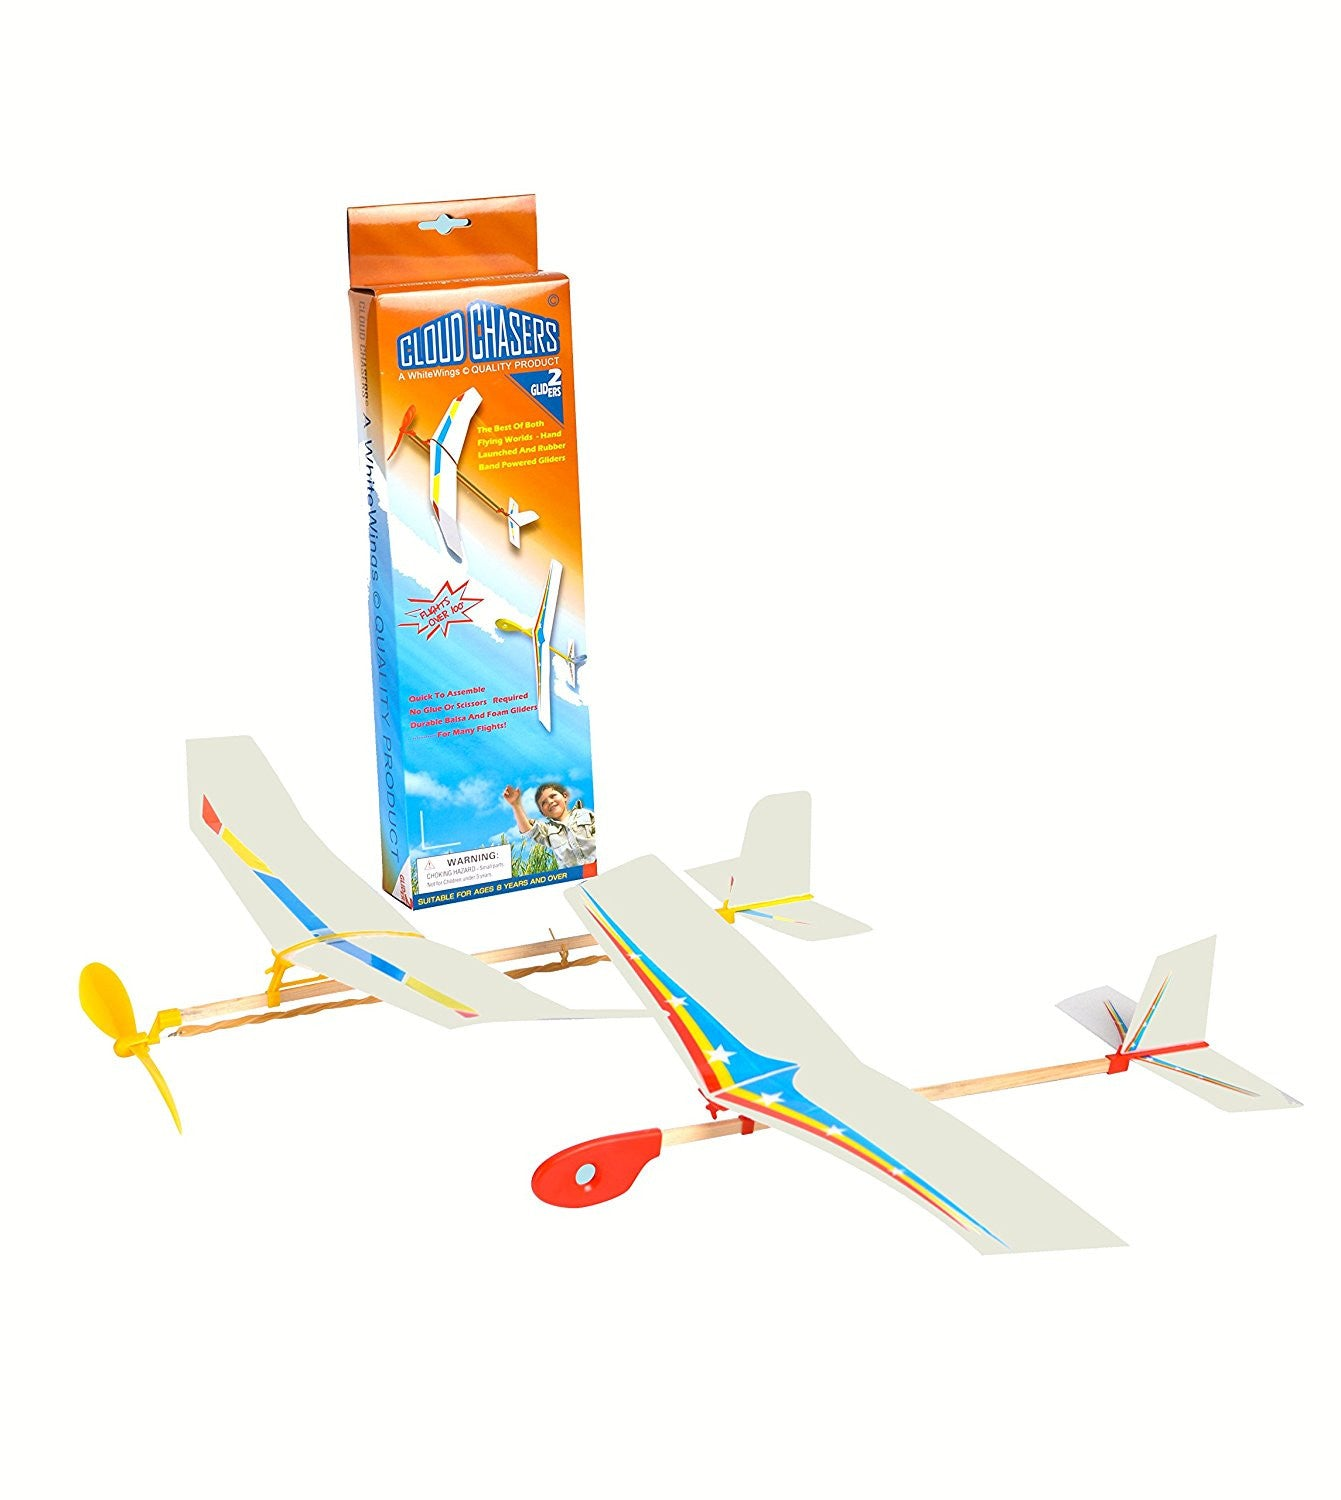 Be Amazing Toys Cloud Chasers - 2 Plane Kit Z0145